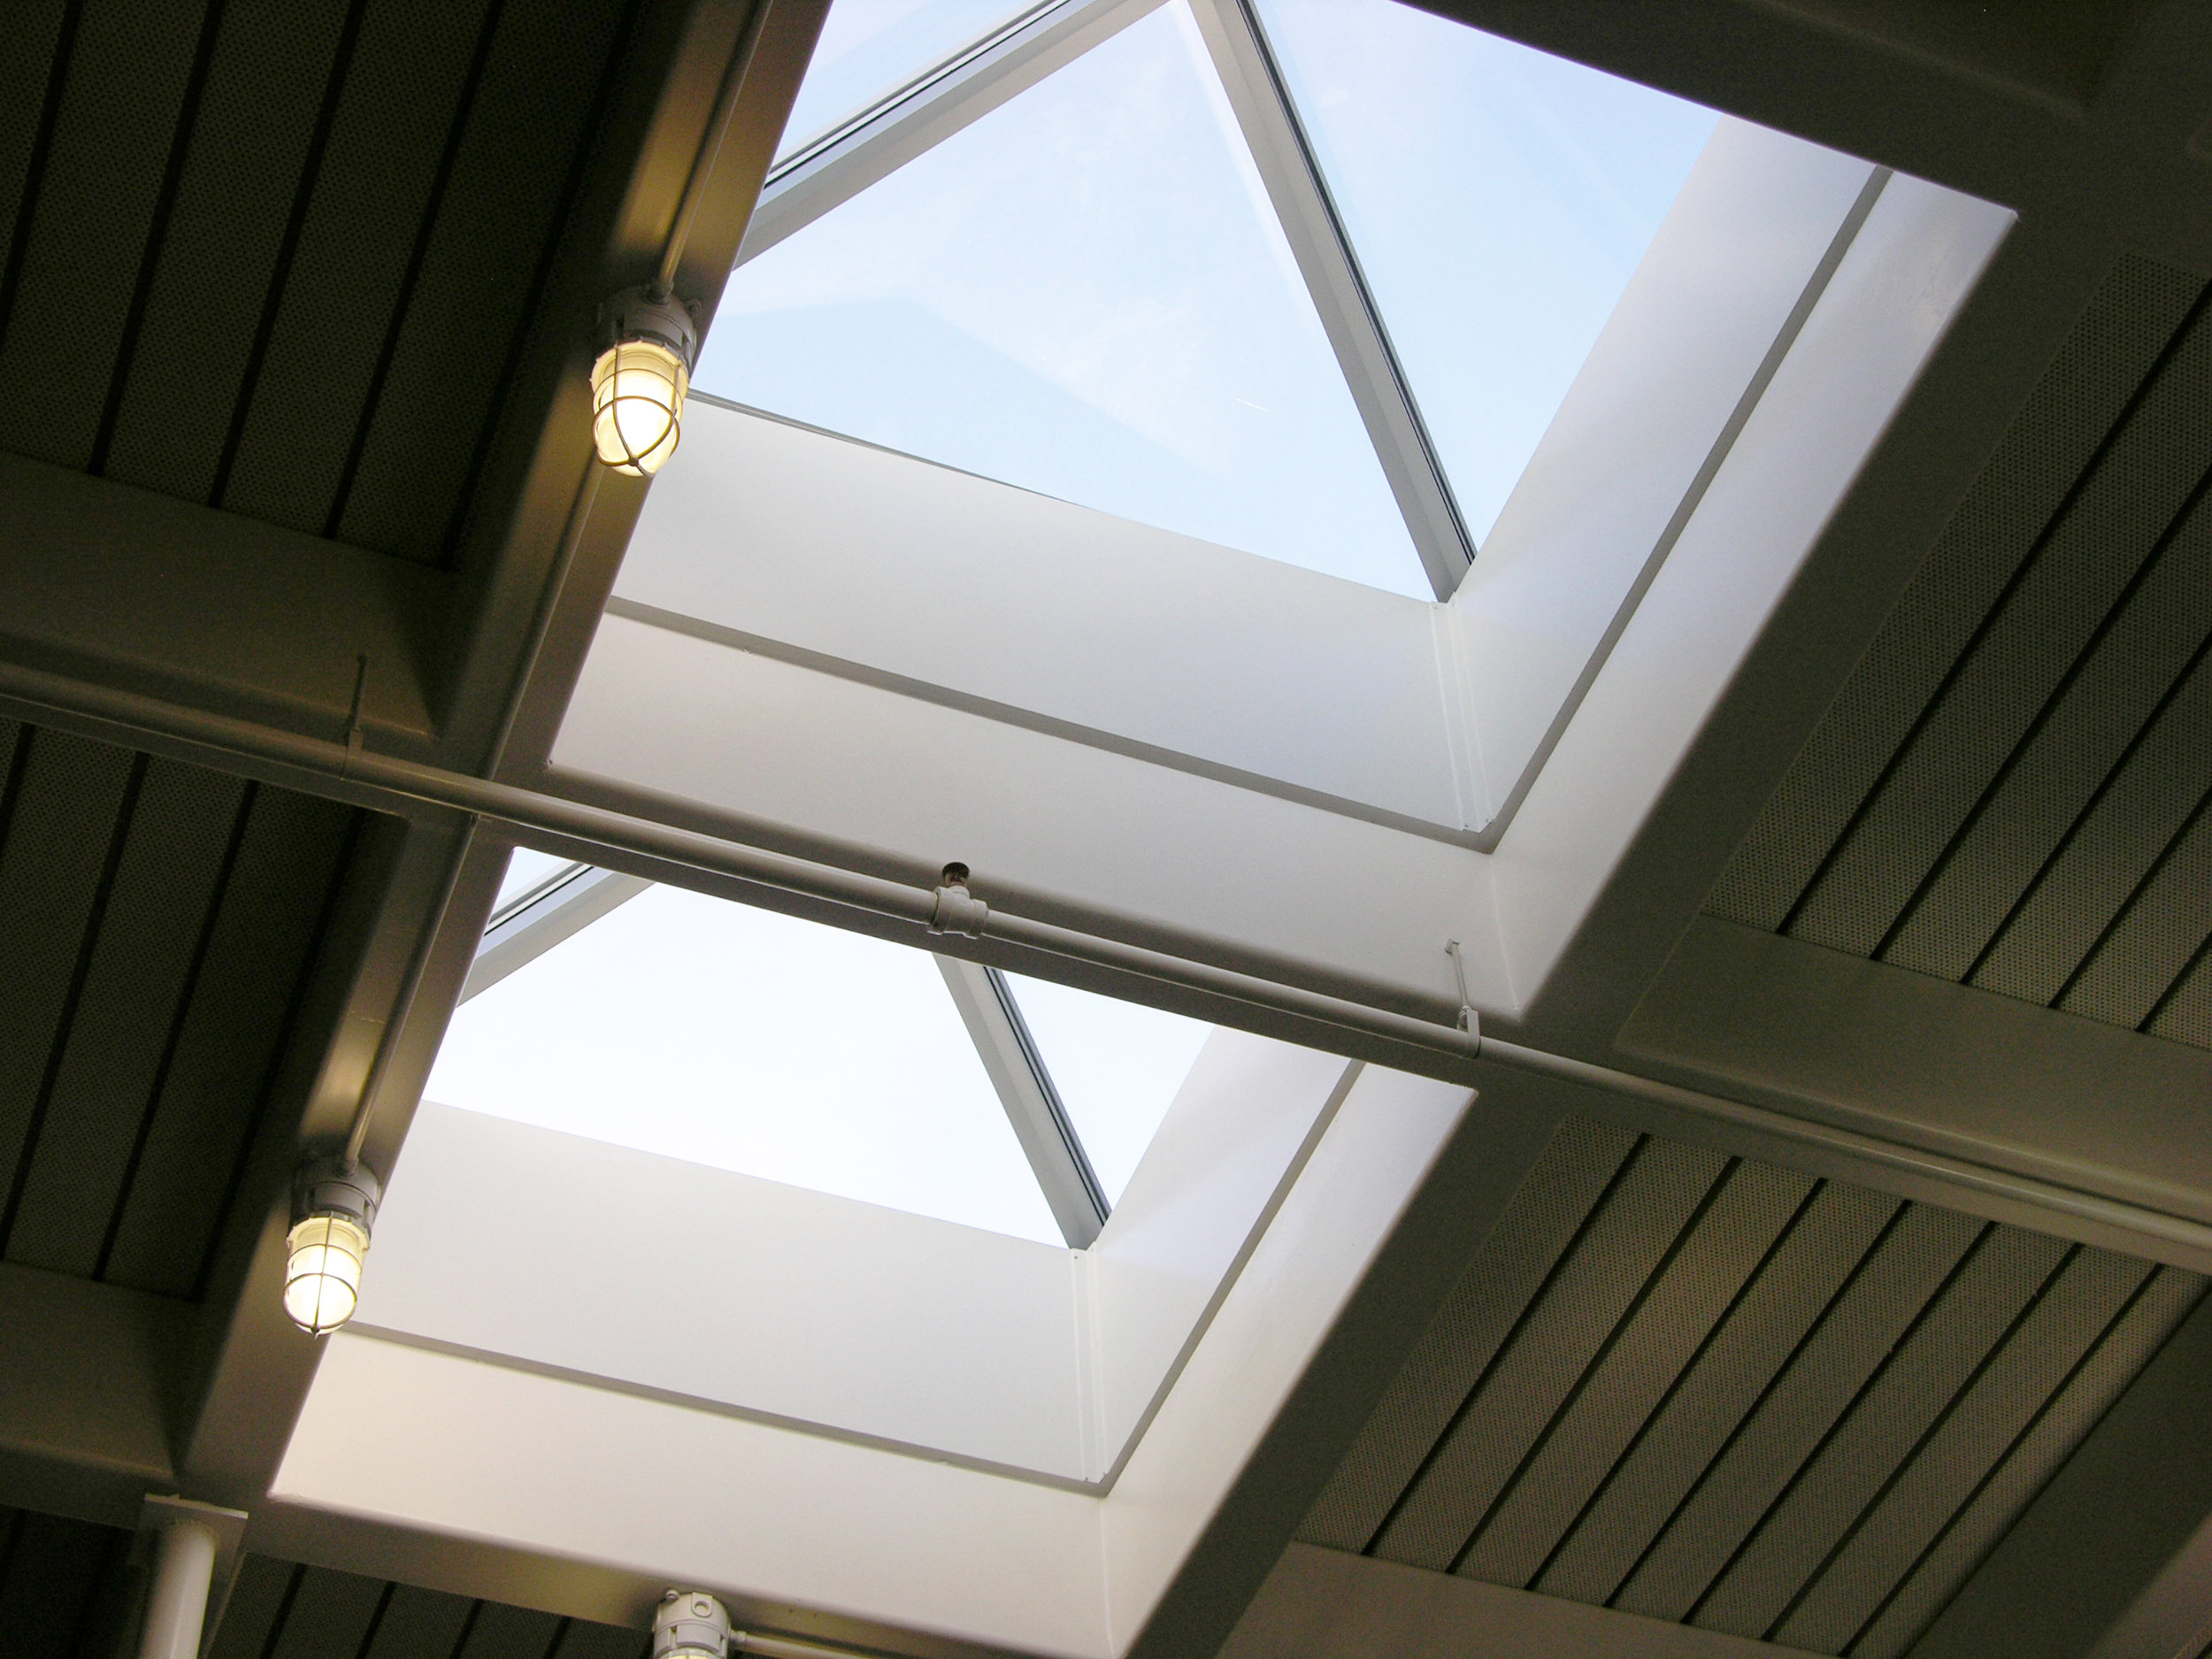 sba_skylight.jpg